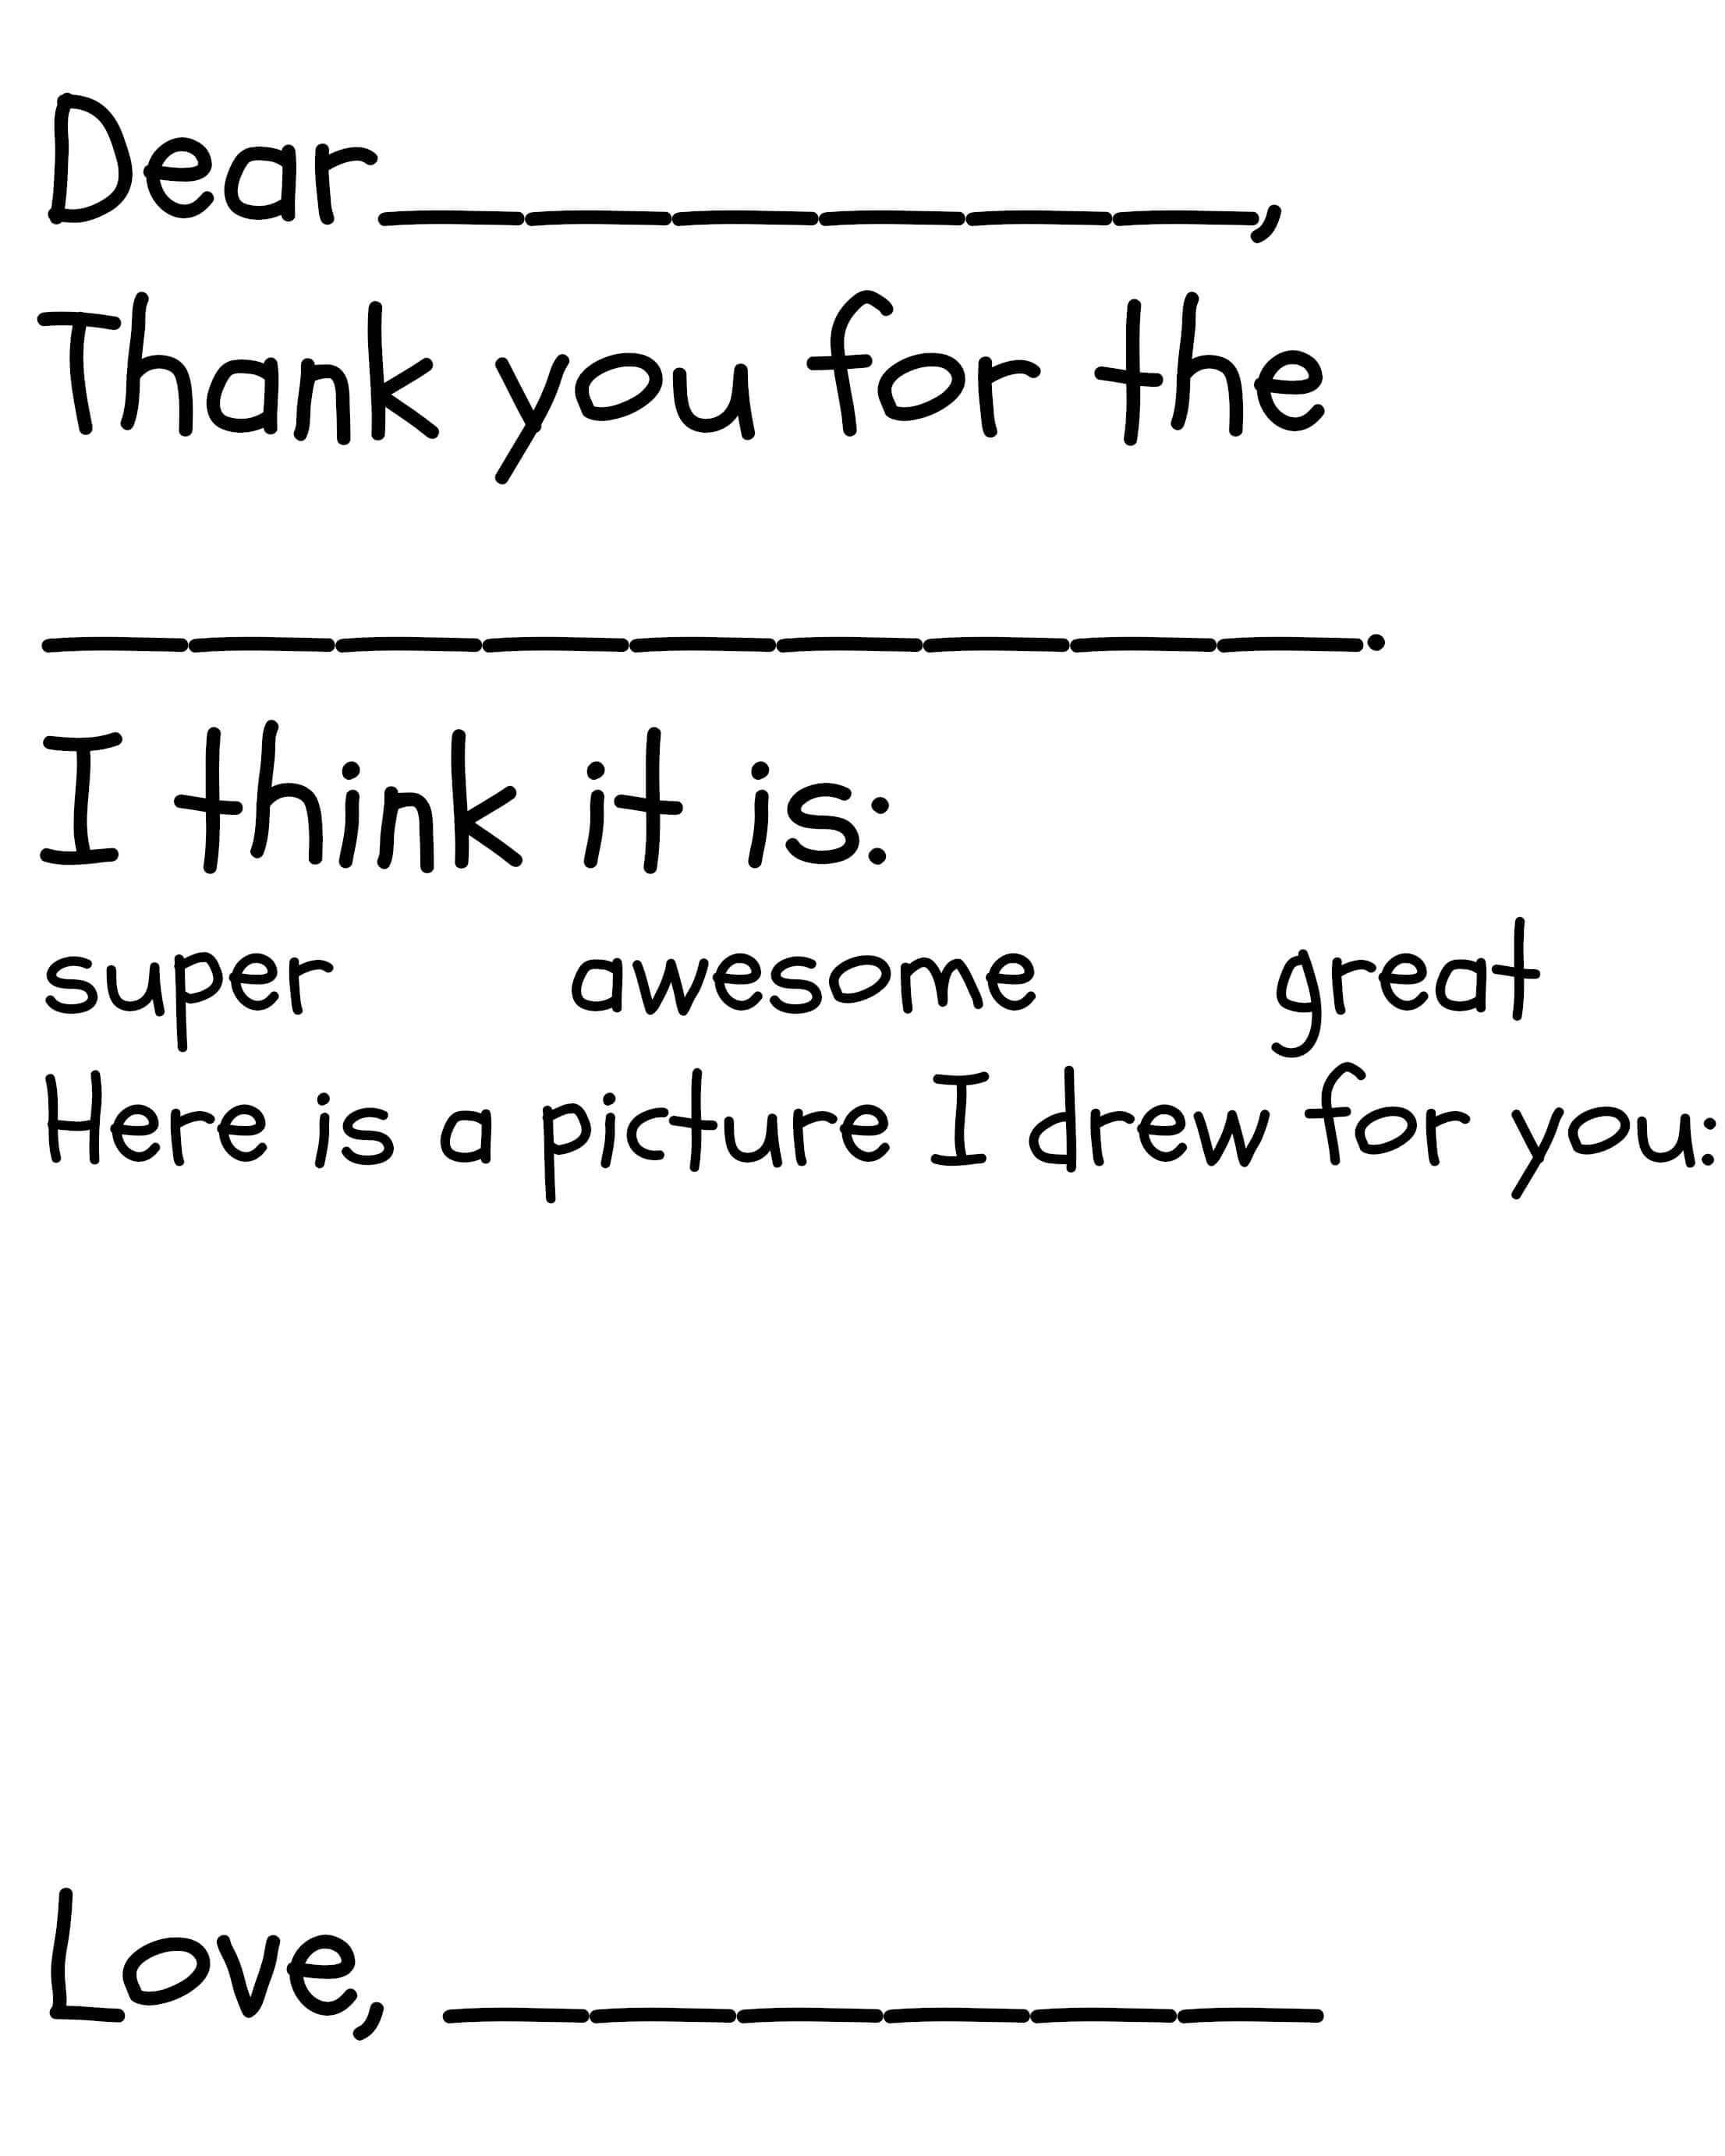 009 Thank You Note Template Ideas Printable Card ~ Ulyssesroom - Free Printable Thank You Cards Black And White